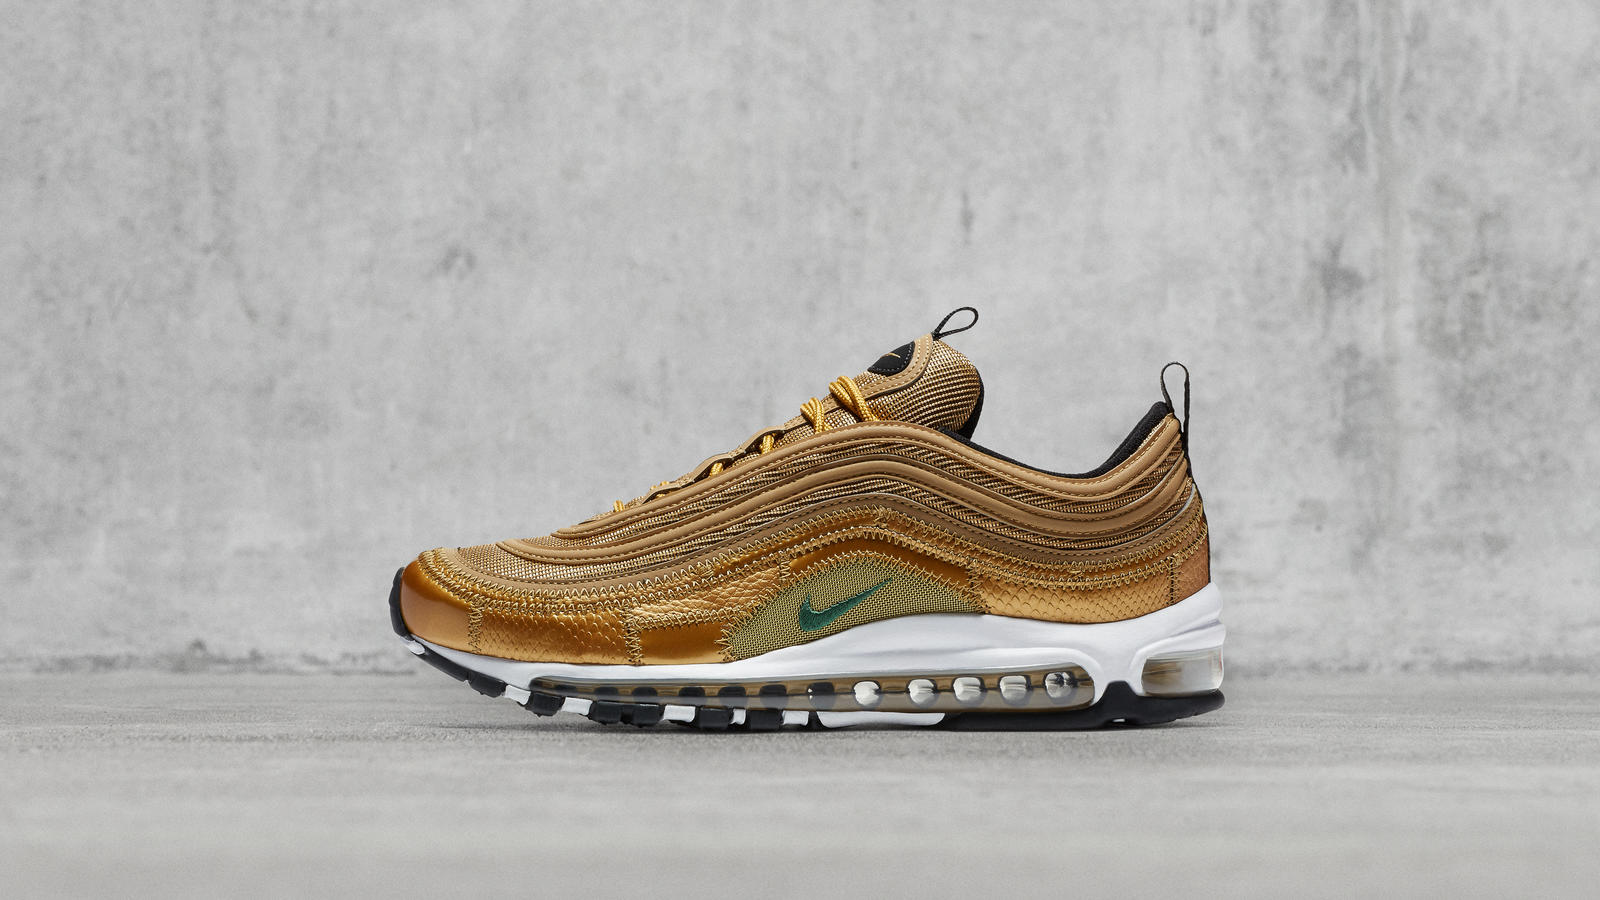 separation shoes 23213 deb34 Nike Air Max 97 CR7 0